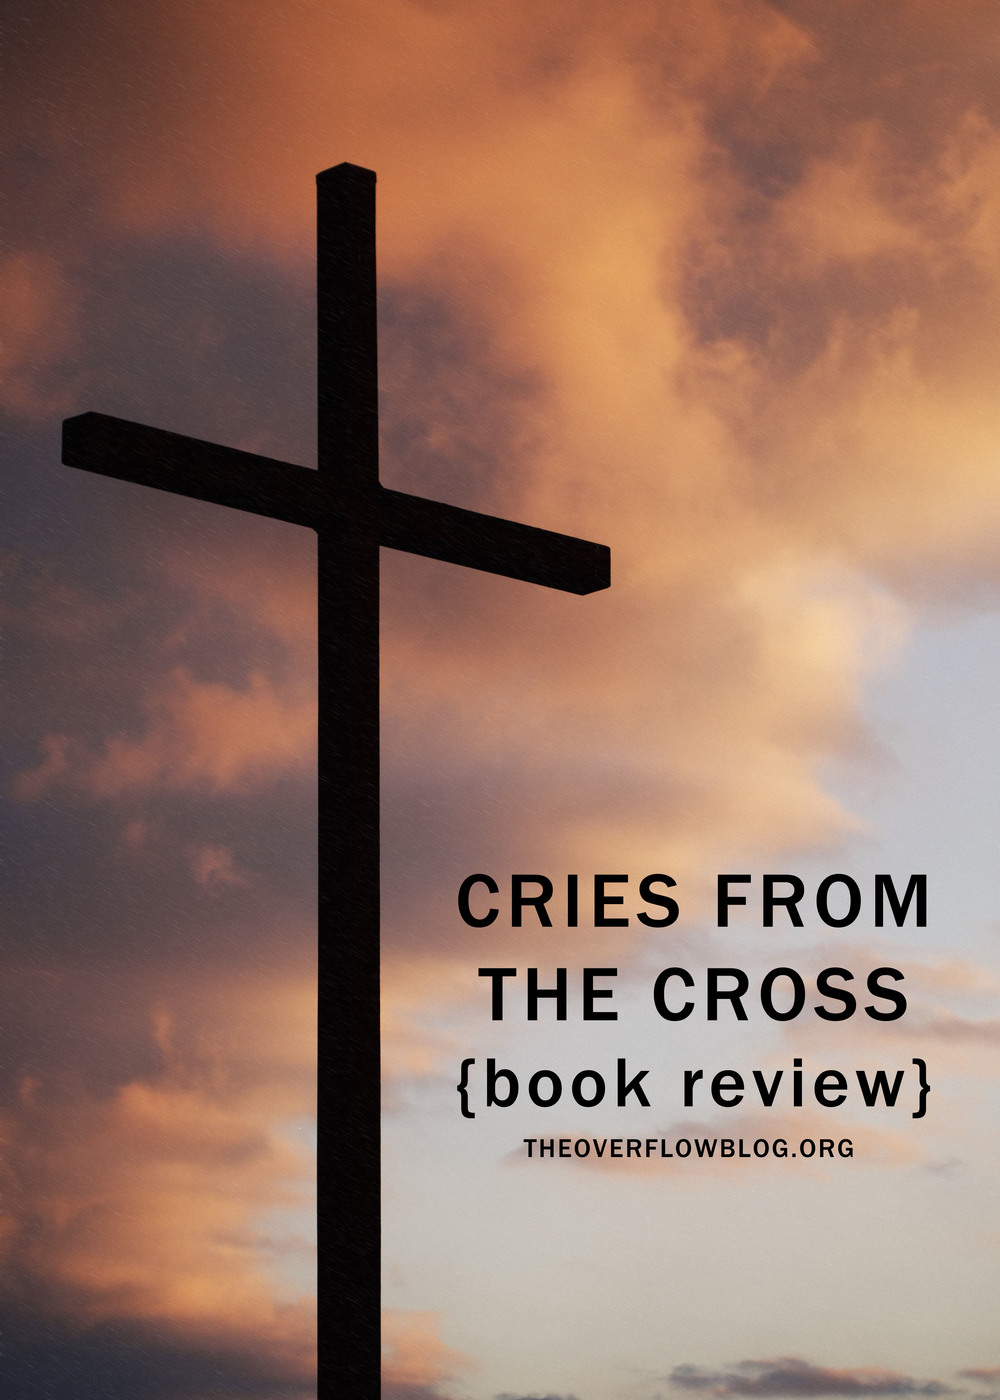 Cries from the Cross (book review)